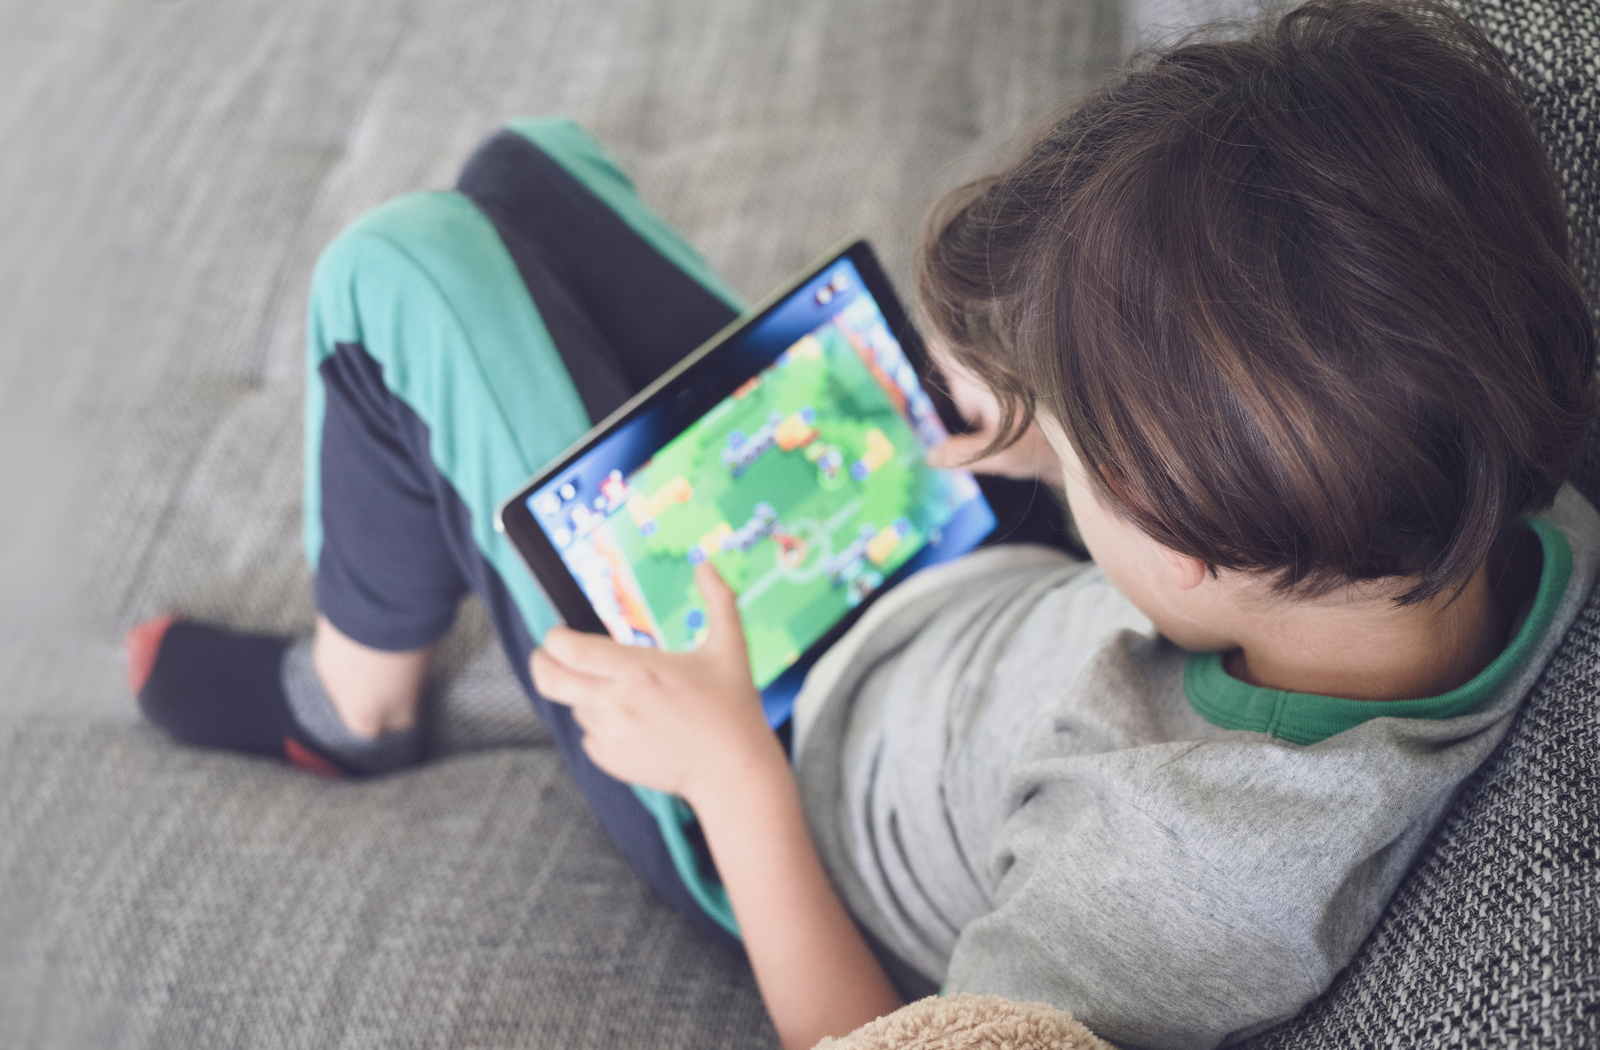 Child playing a game on a tablet potentially at risk of digital eye strain.